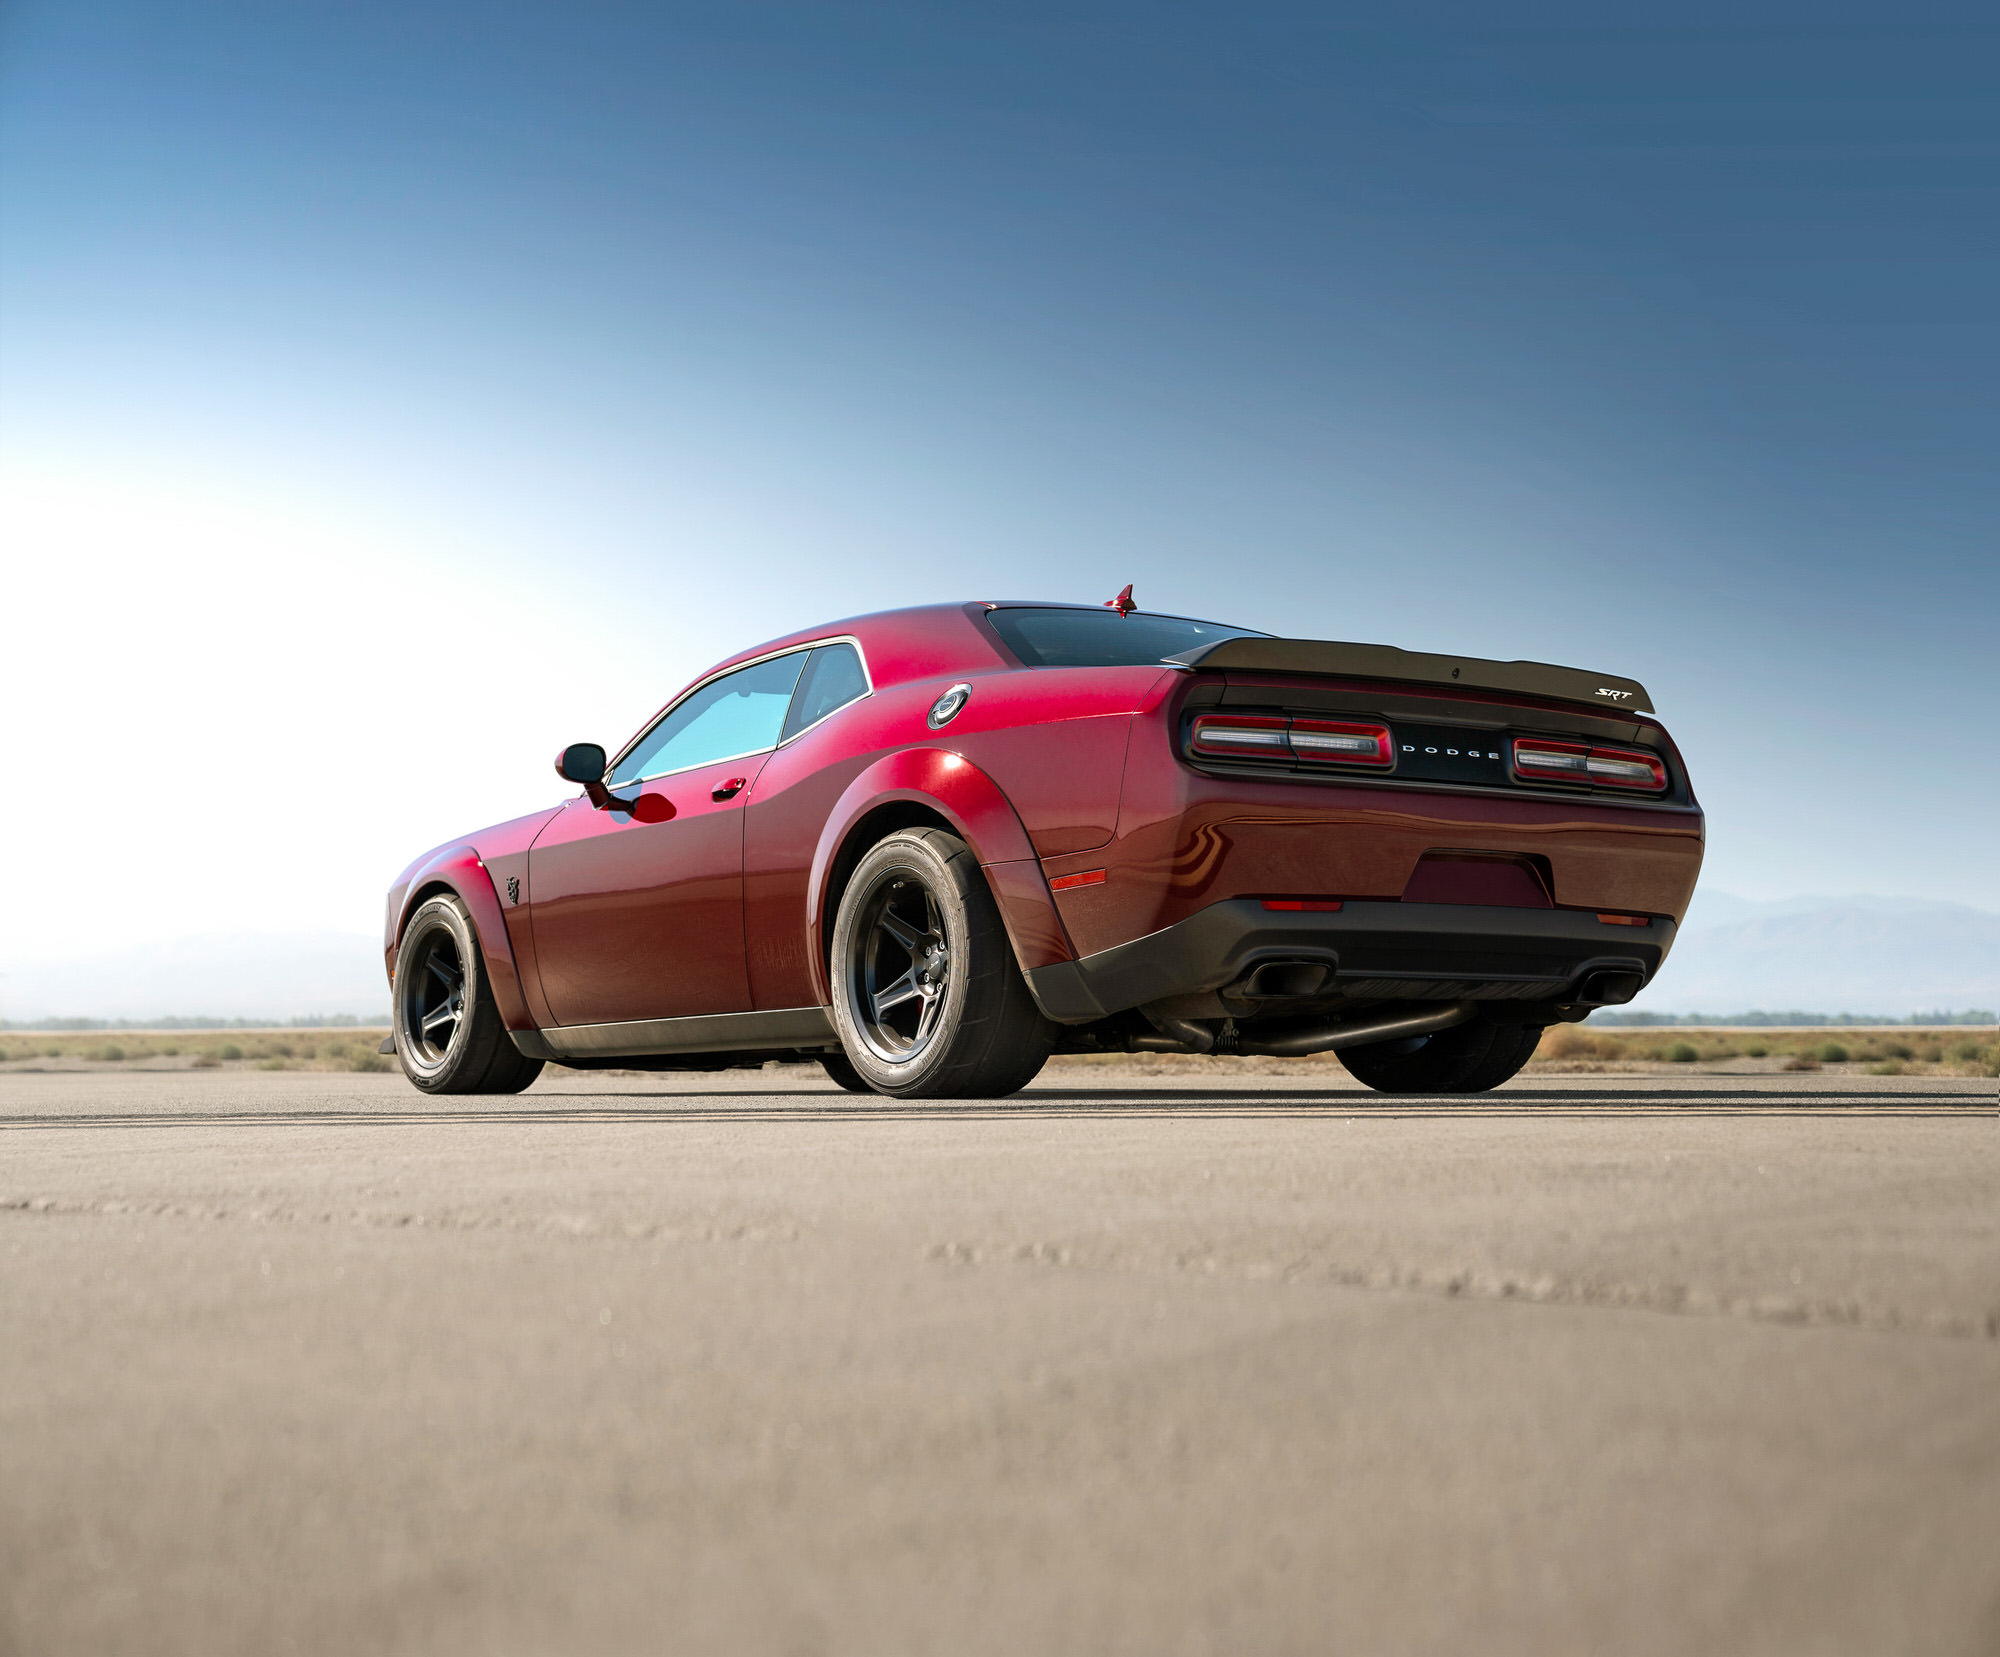 Dodge Demon on tarmac at NASA Armstrong Flight Research Center